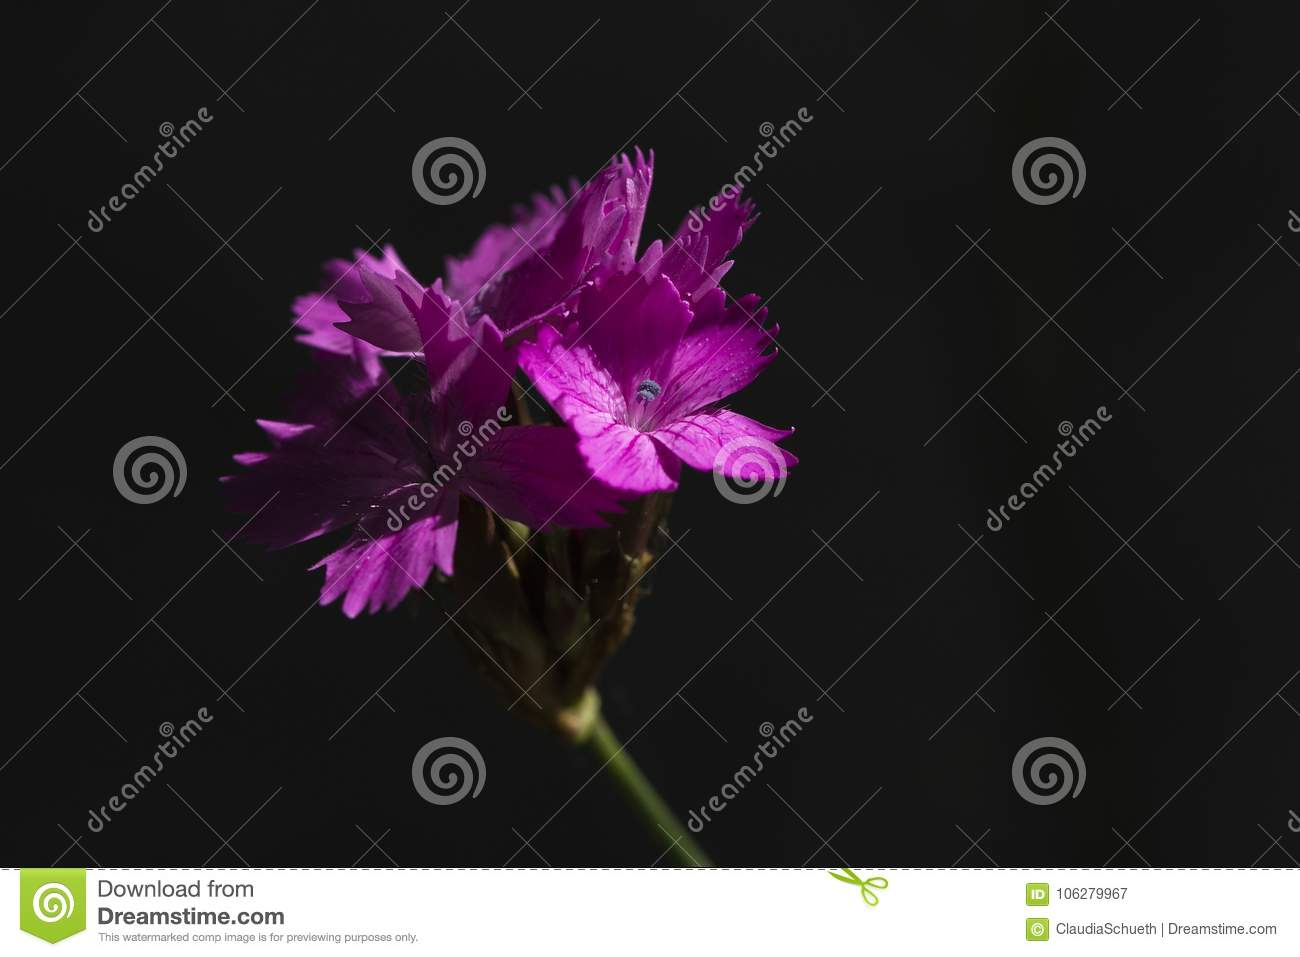 Carthusian pink in the shadow Dianthus carthusianorum